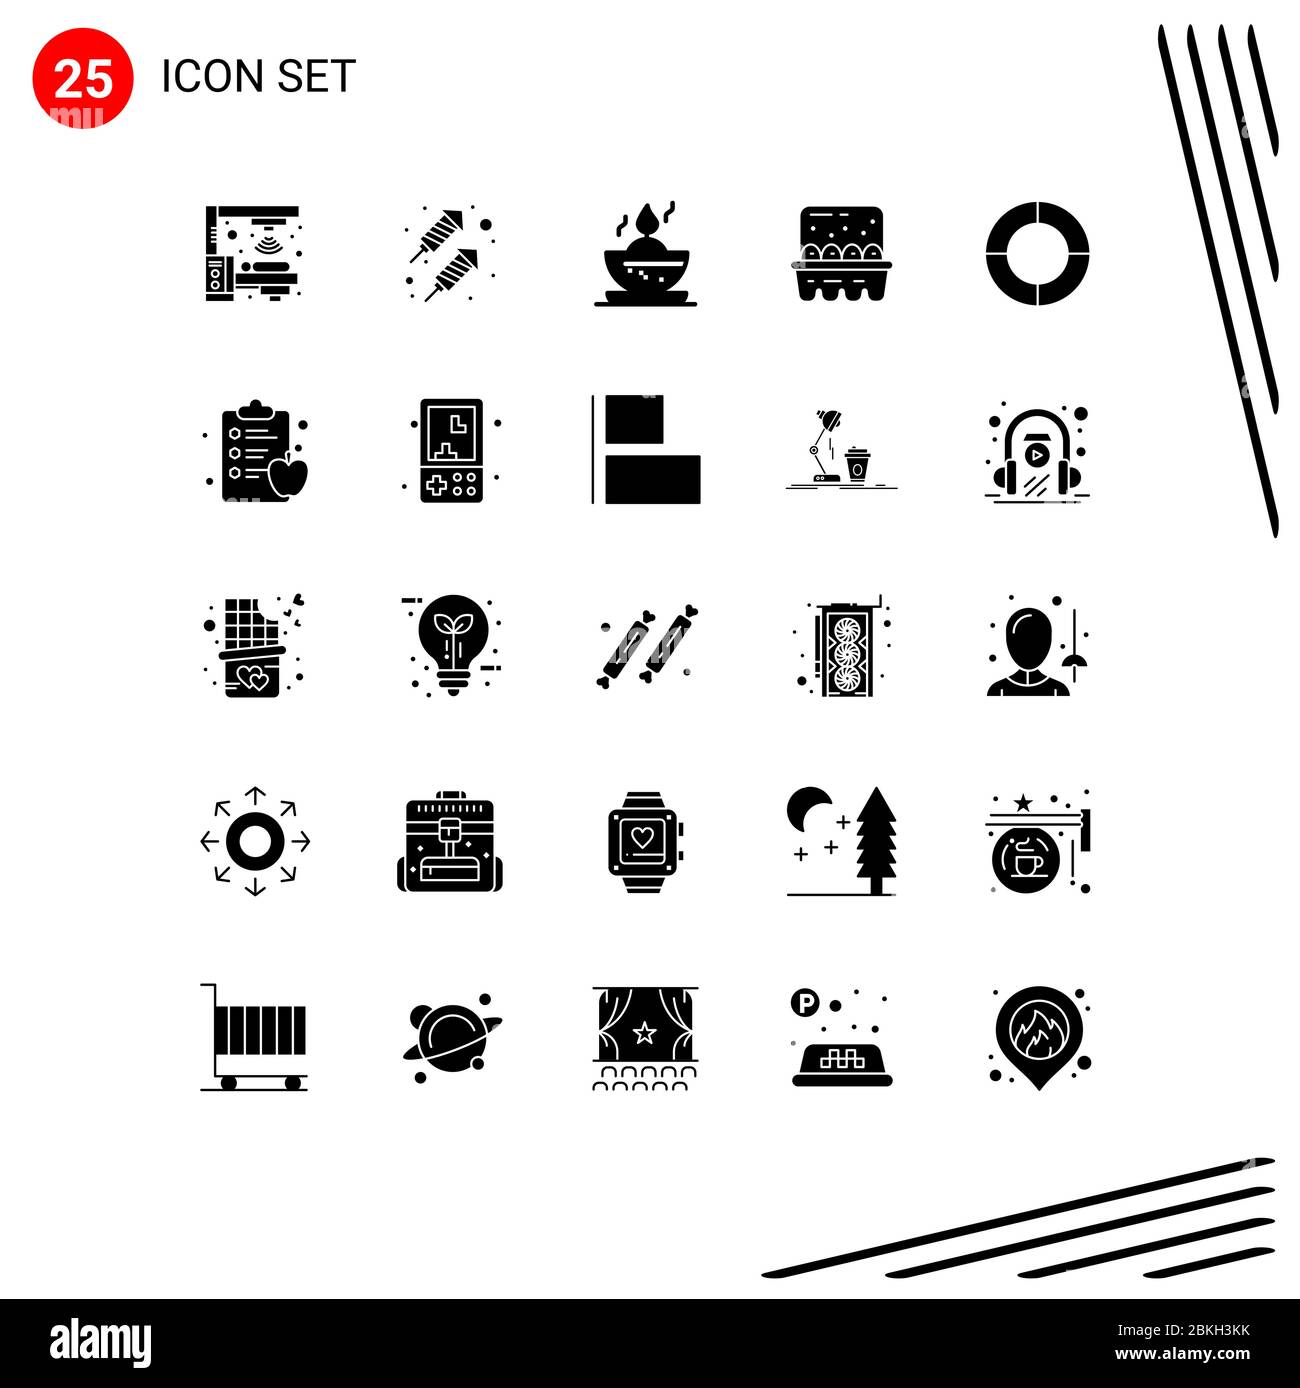 25 Universal Solid Glyphs Set For Web And Mobile Applications Apple Diagram Candle Chart Eggs Editable Vector Design Elements Stock Vector Image Art Alamy